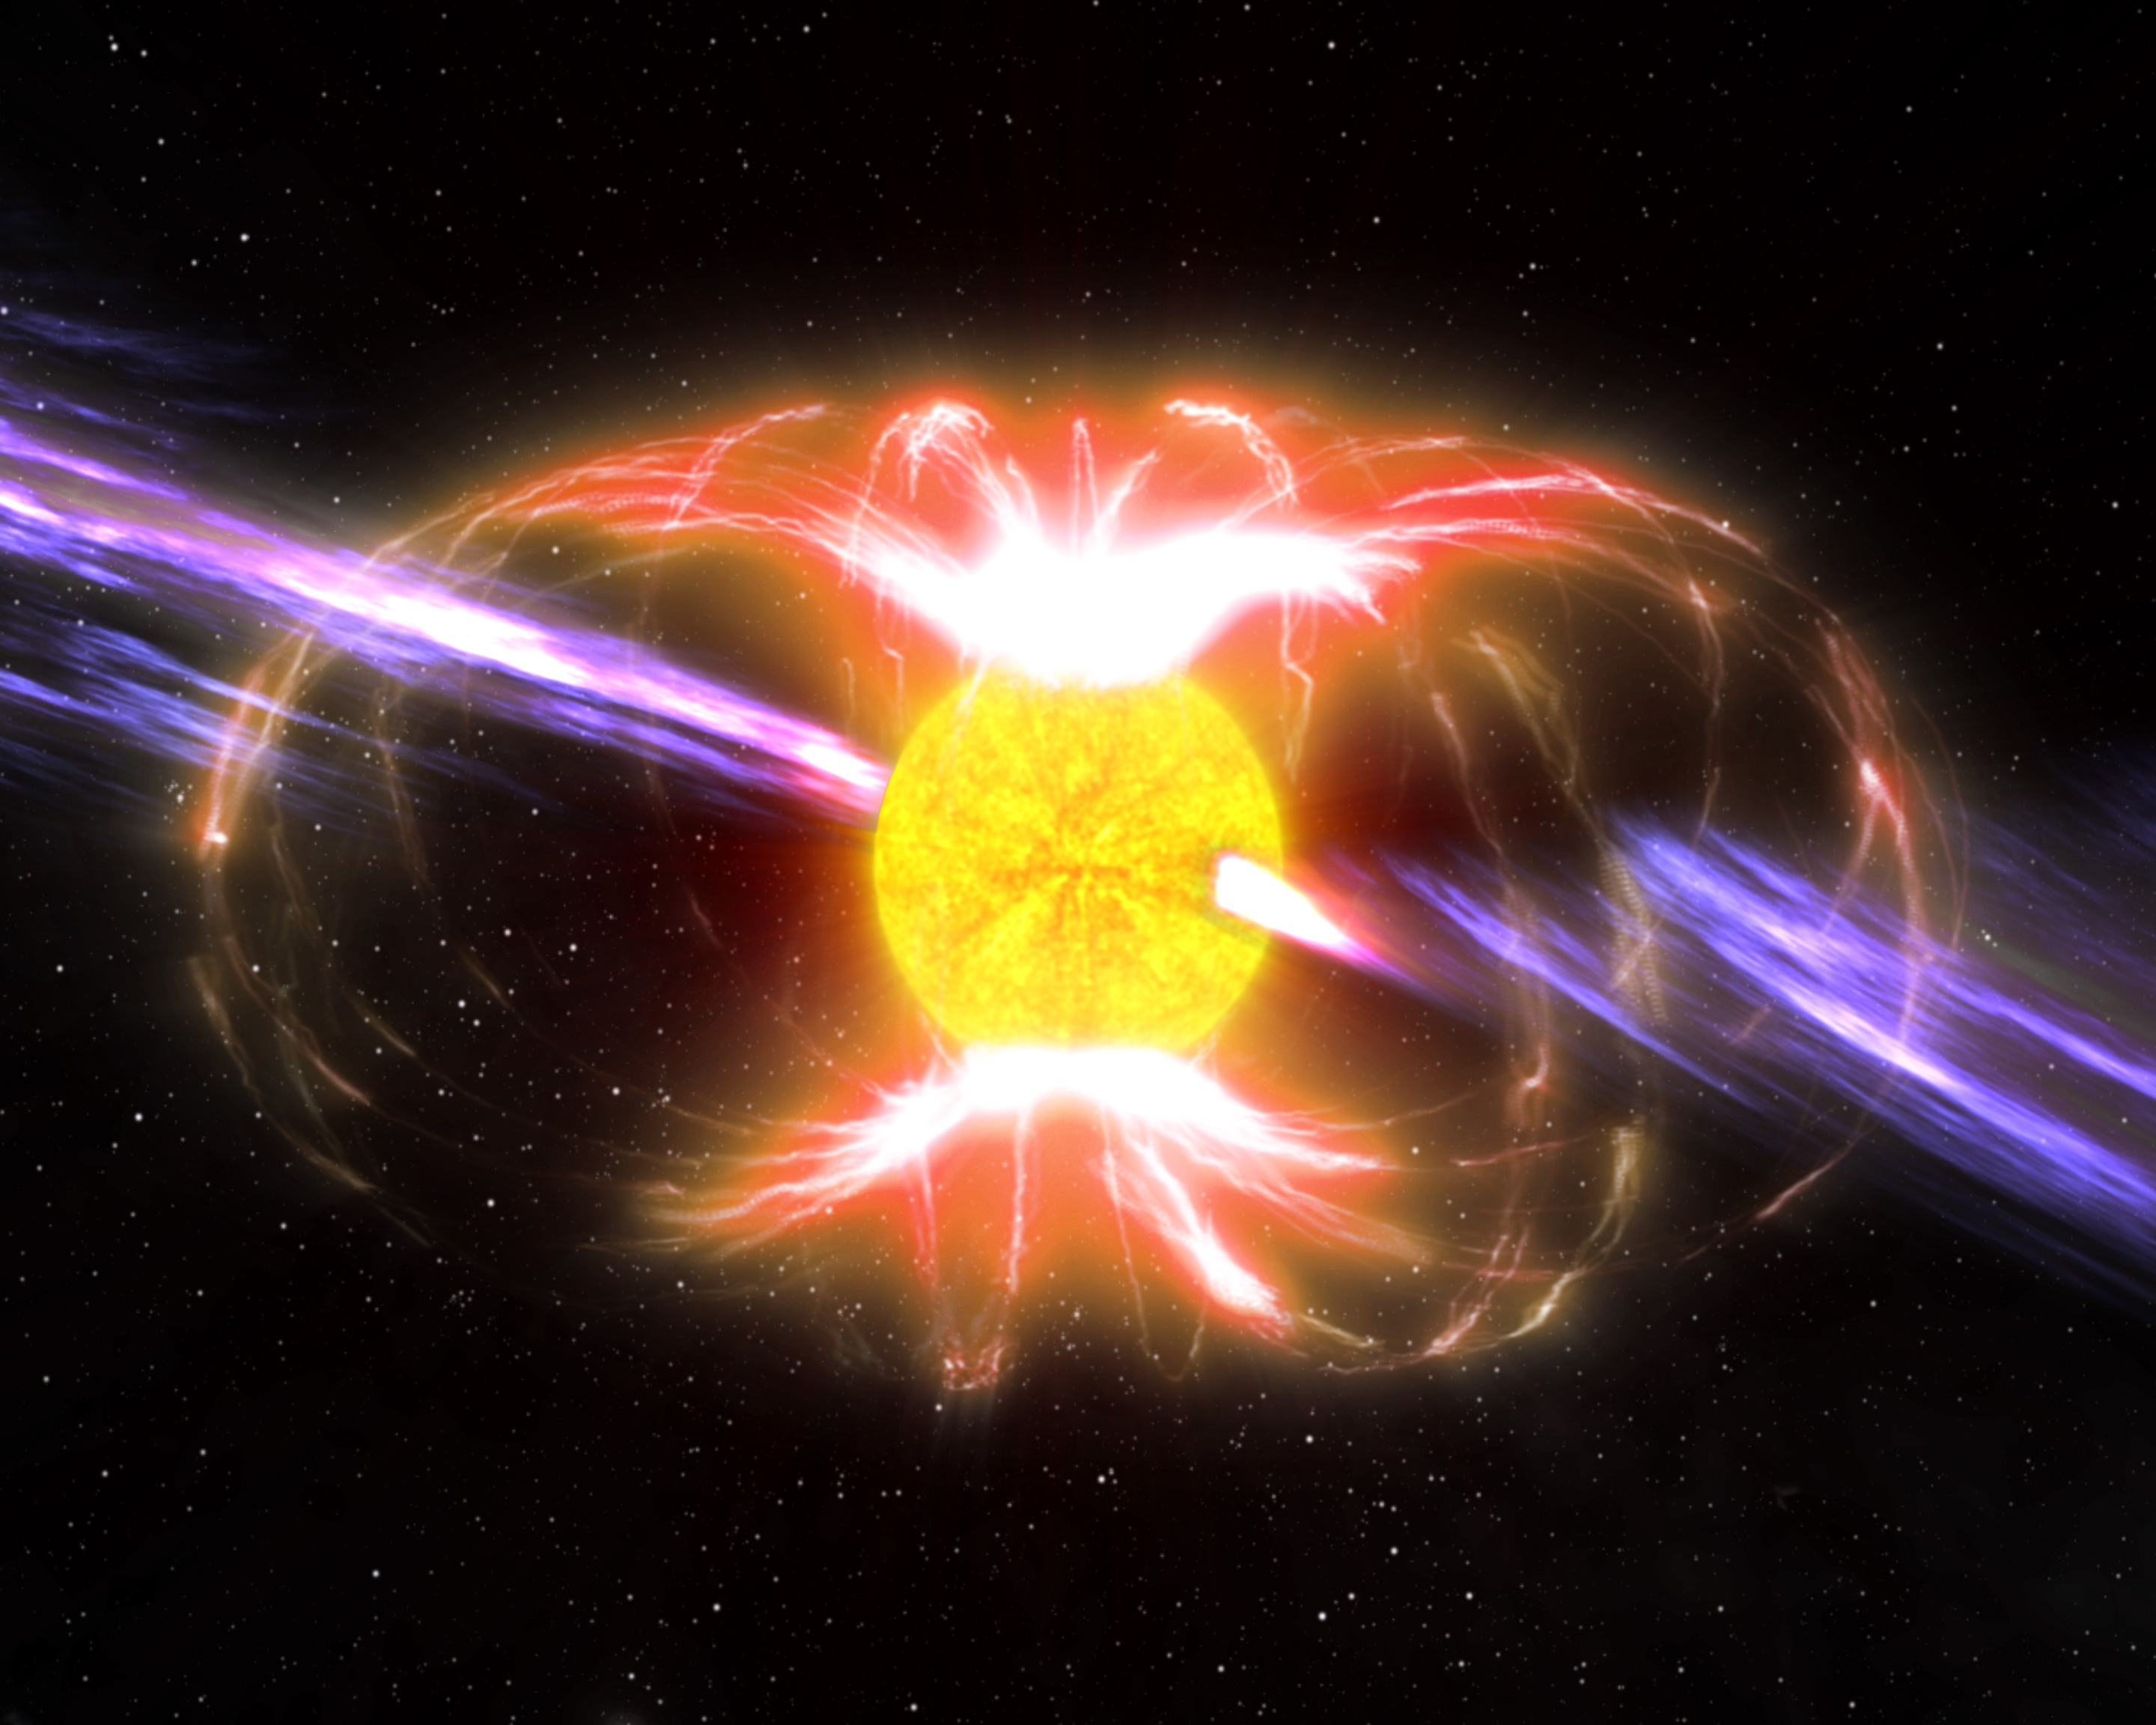 An compact star with a strong magnetic field and light emitting from its spin axis